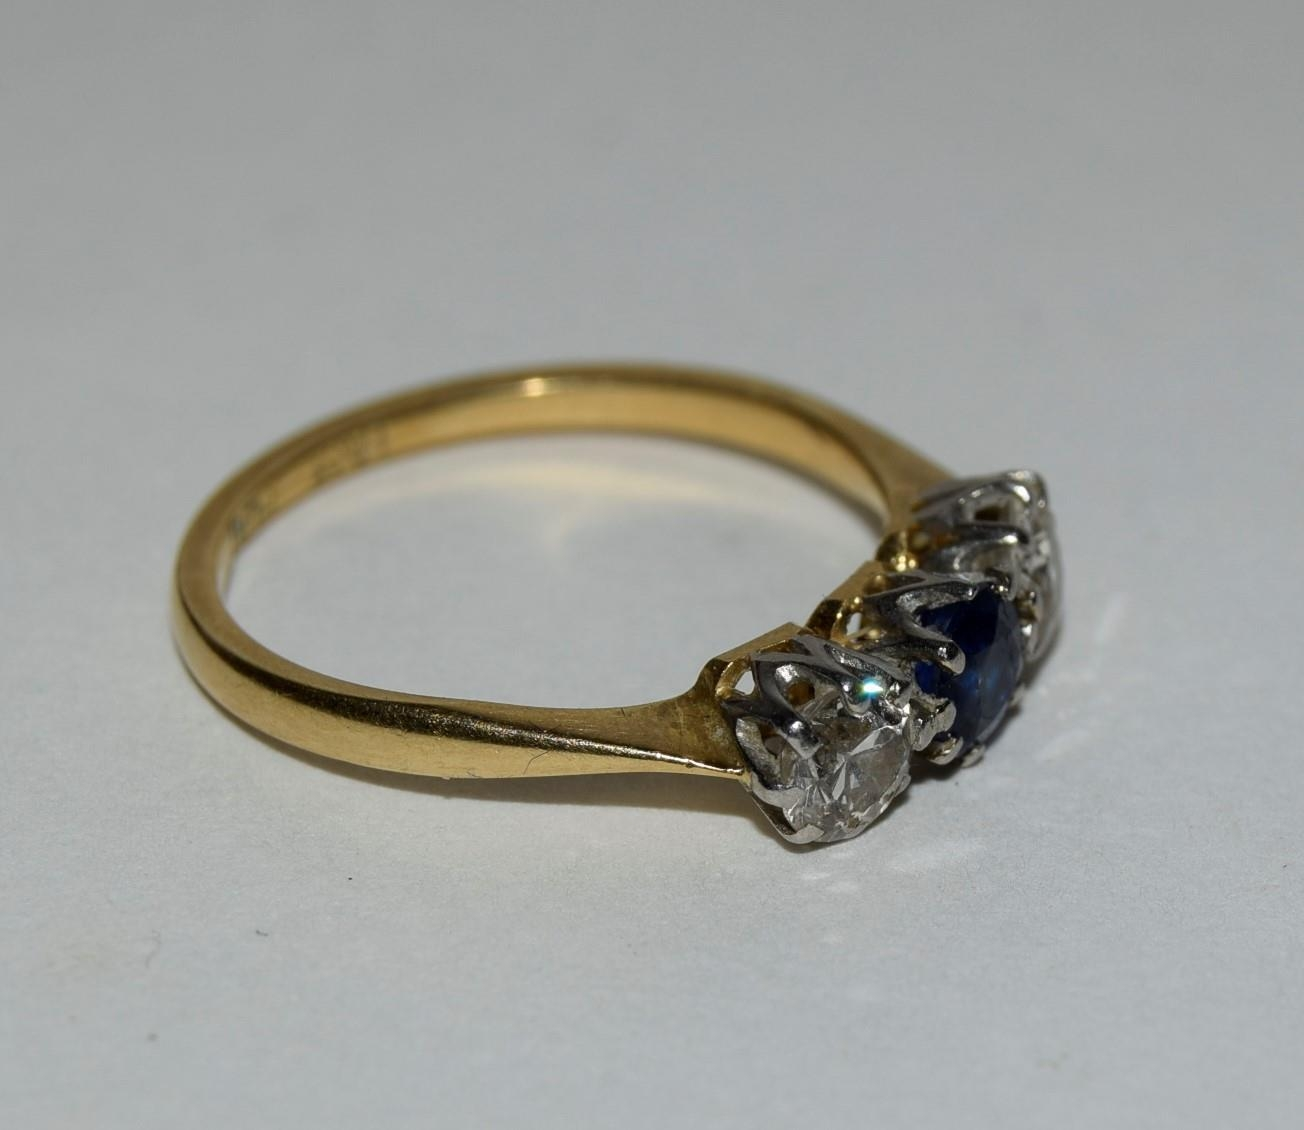 18ct gold and platinum ladies diamond and sapphire 3 stone ring approx 0.5ct diamond size L - Image 5 of 6